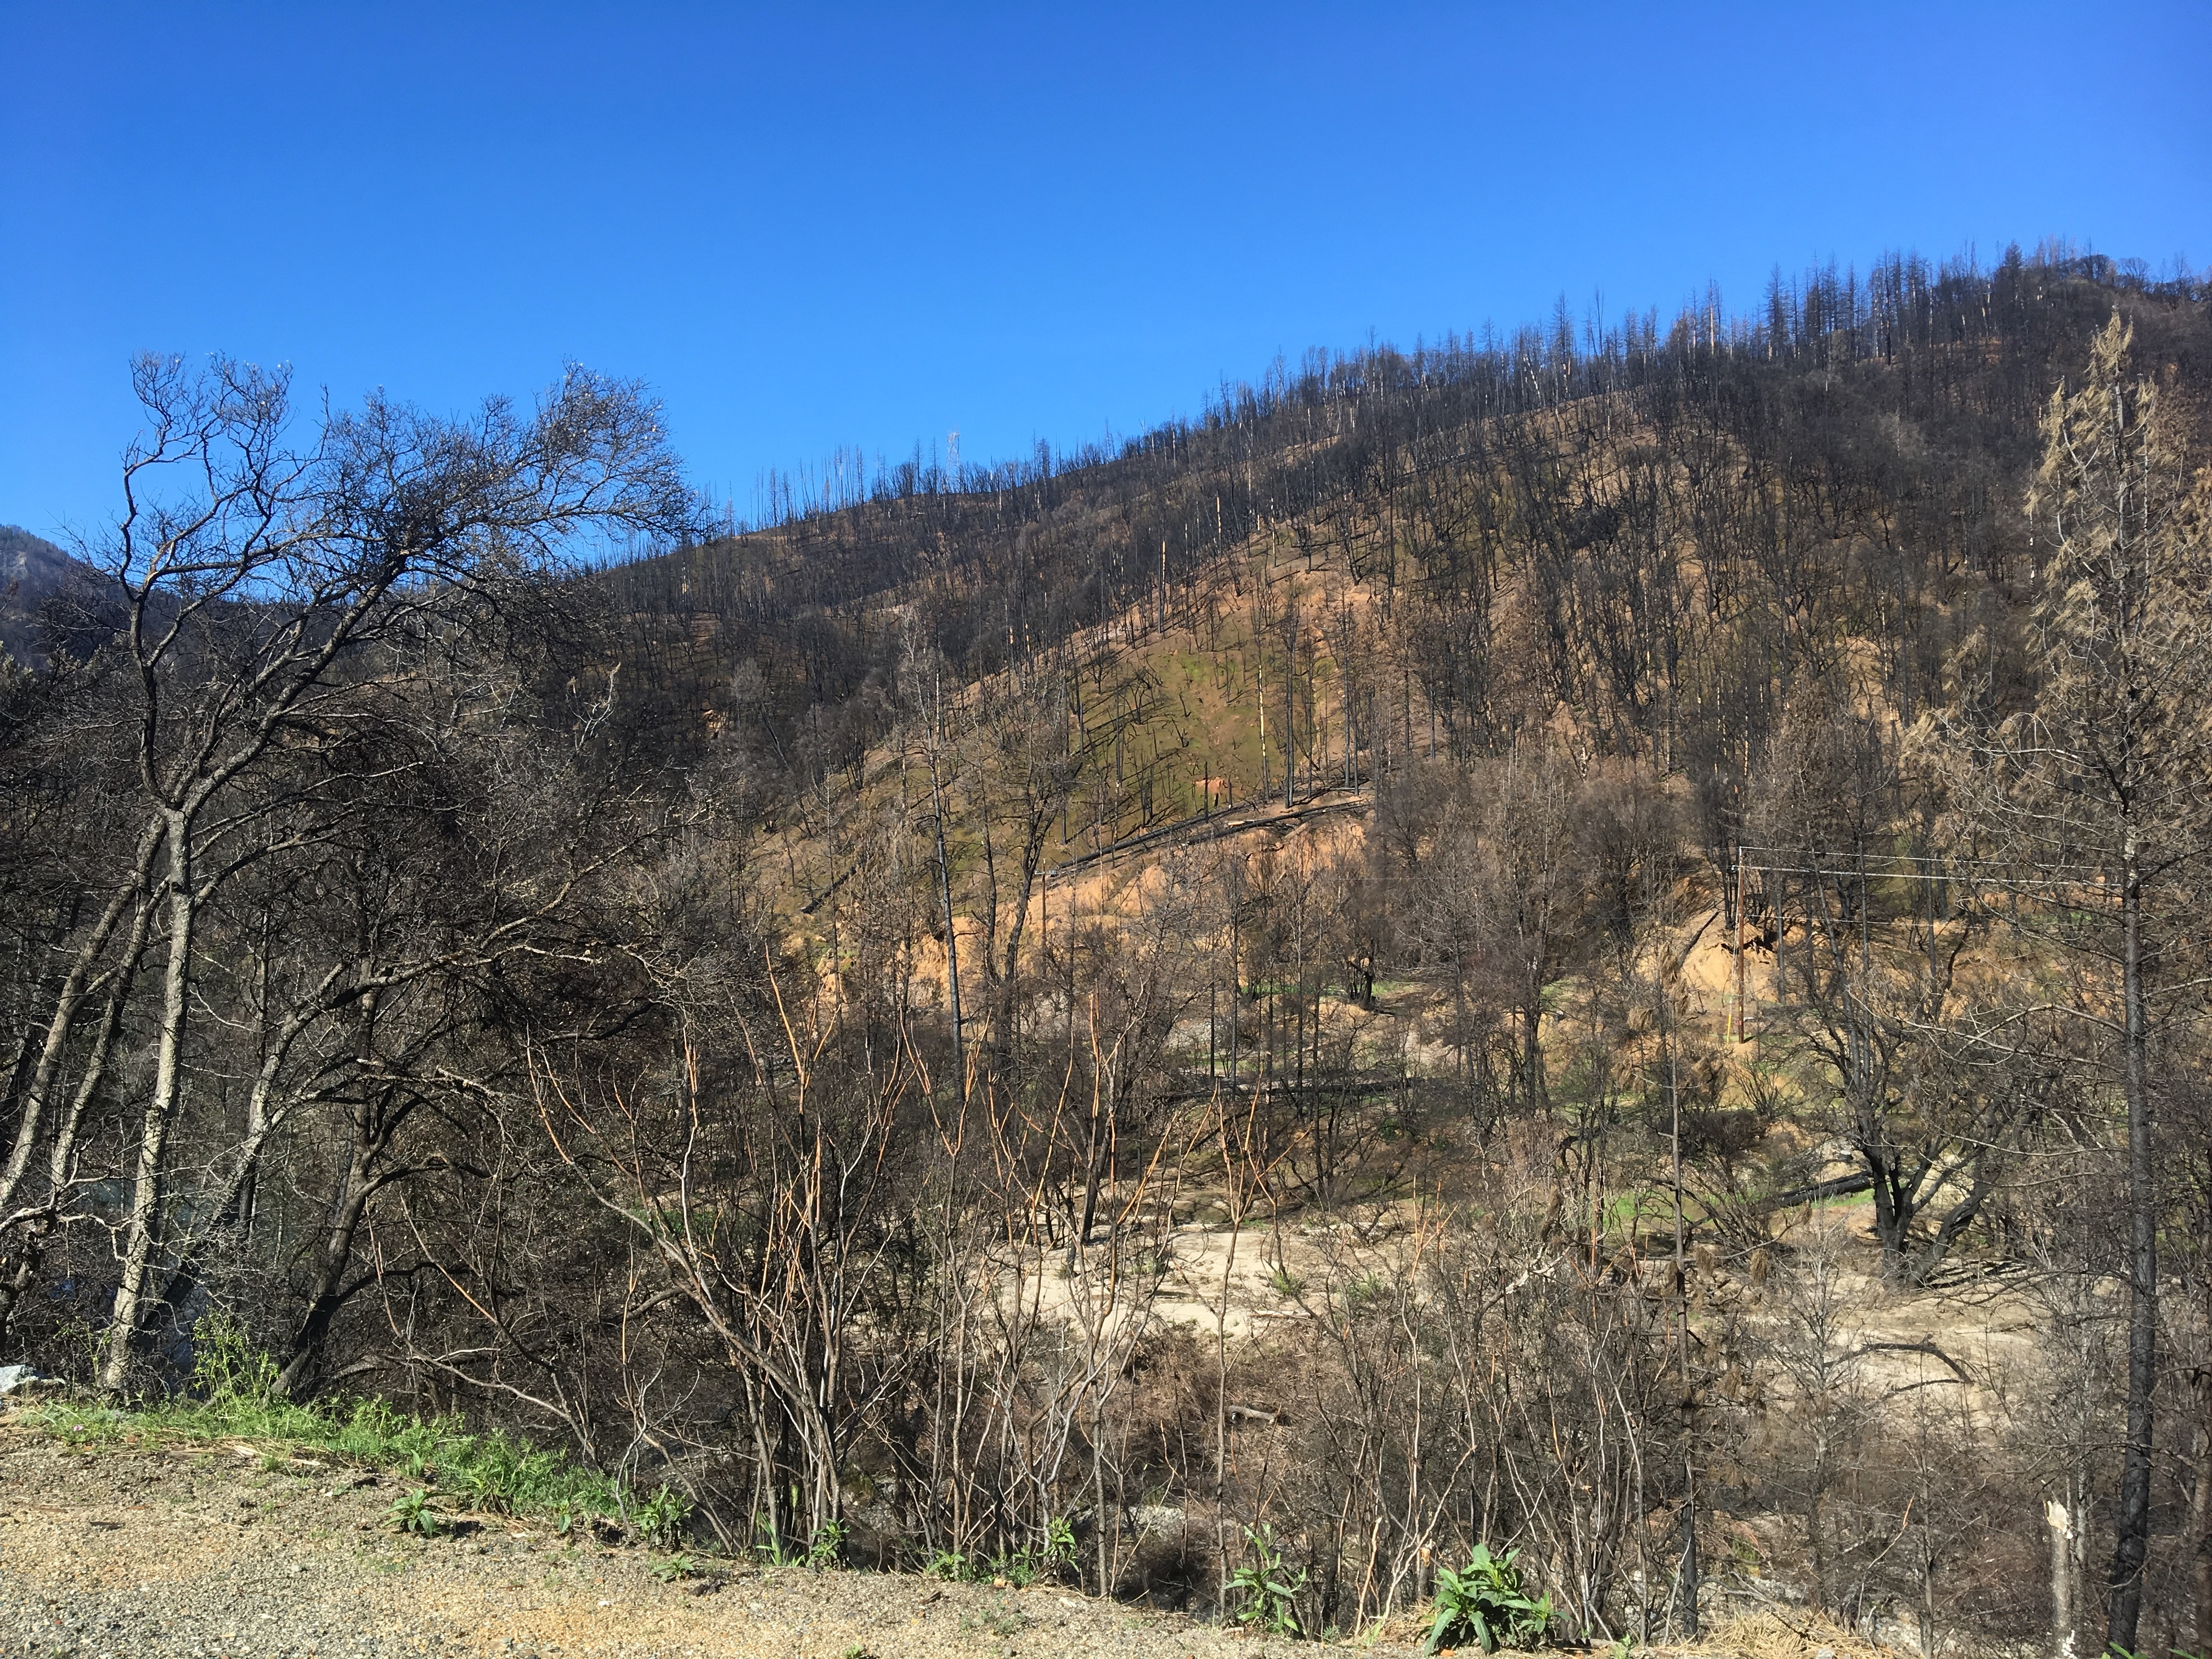 Caption: The Carr Fire burn scar